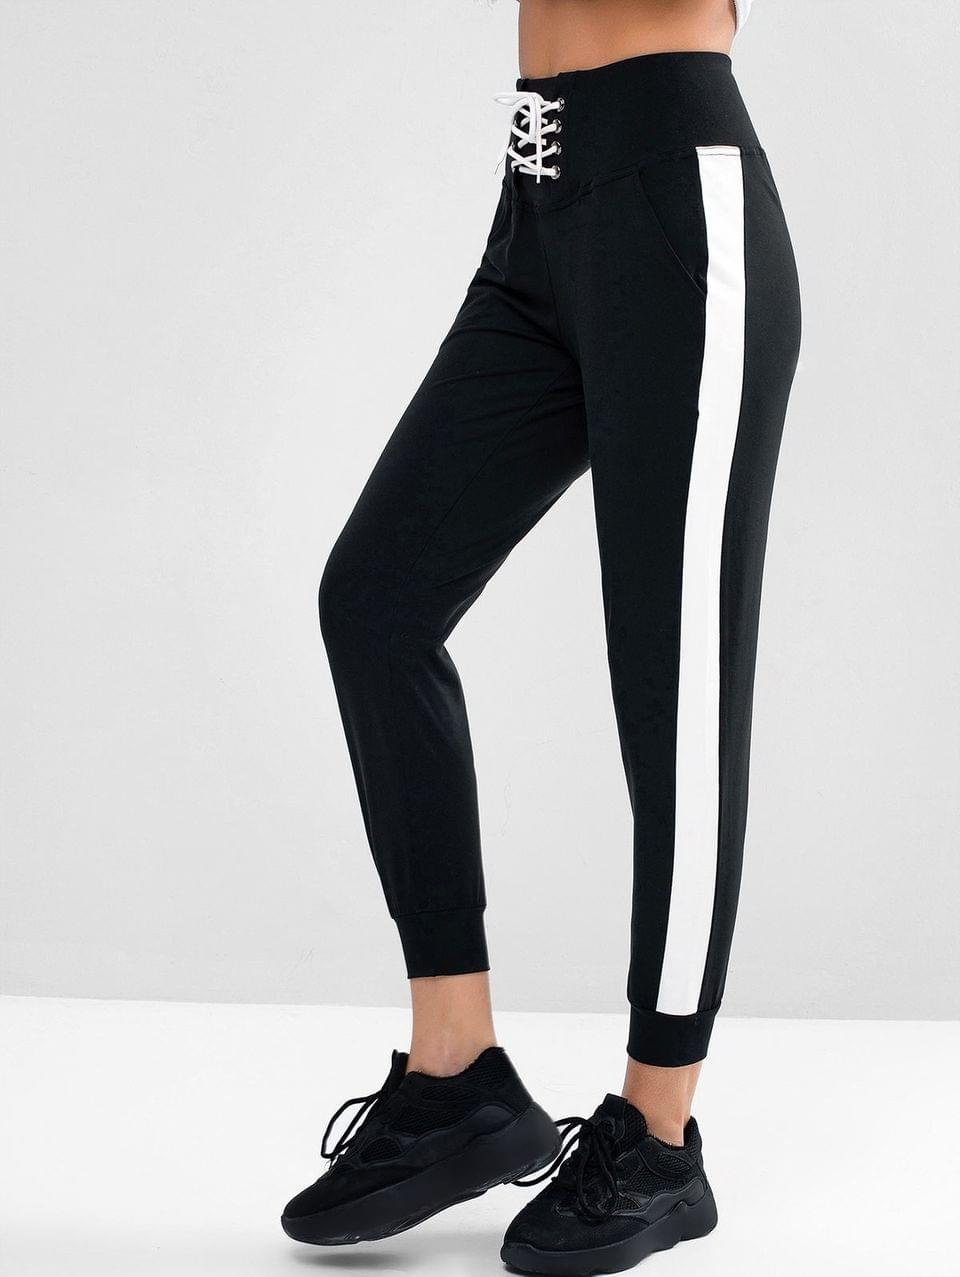 Women's Lace Up Stripe Trim Jogger Pants - Black Xl